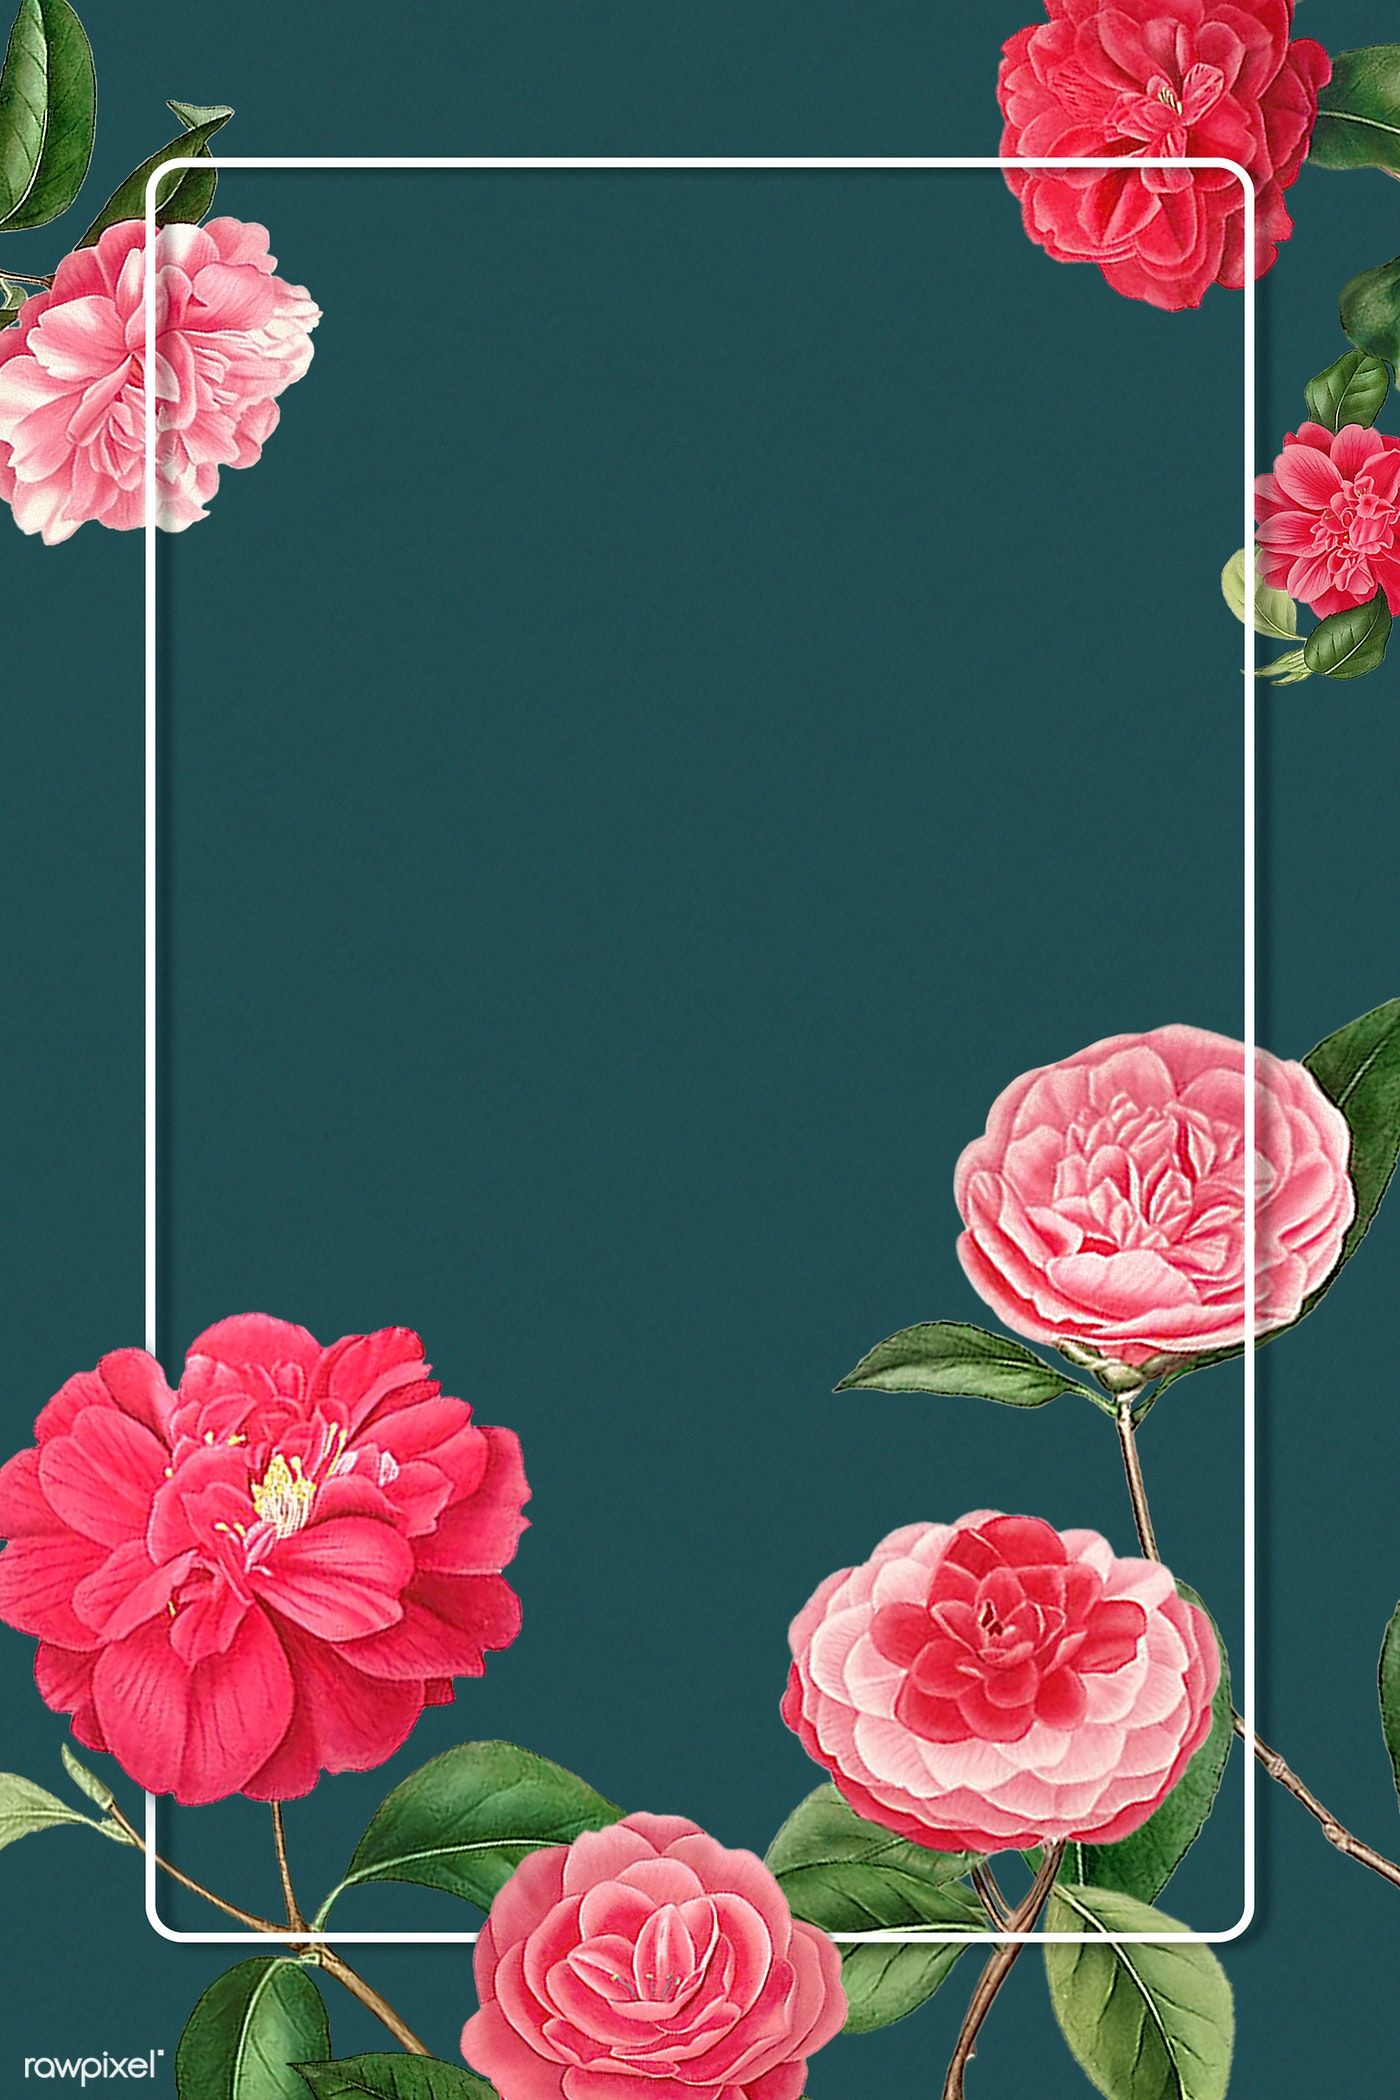 Download Premium Psd Of Red And Pink Camellia Flower Patterned Blank Frame In 2020 Flower Illustration Flower Frame Camellia Flower